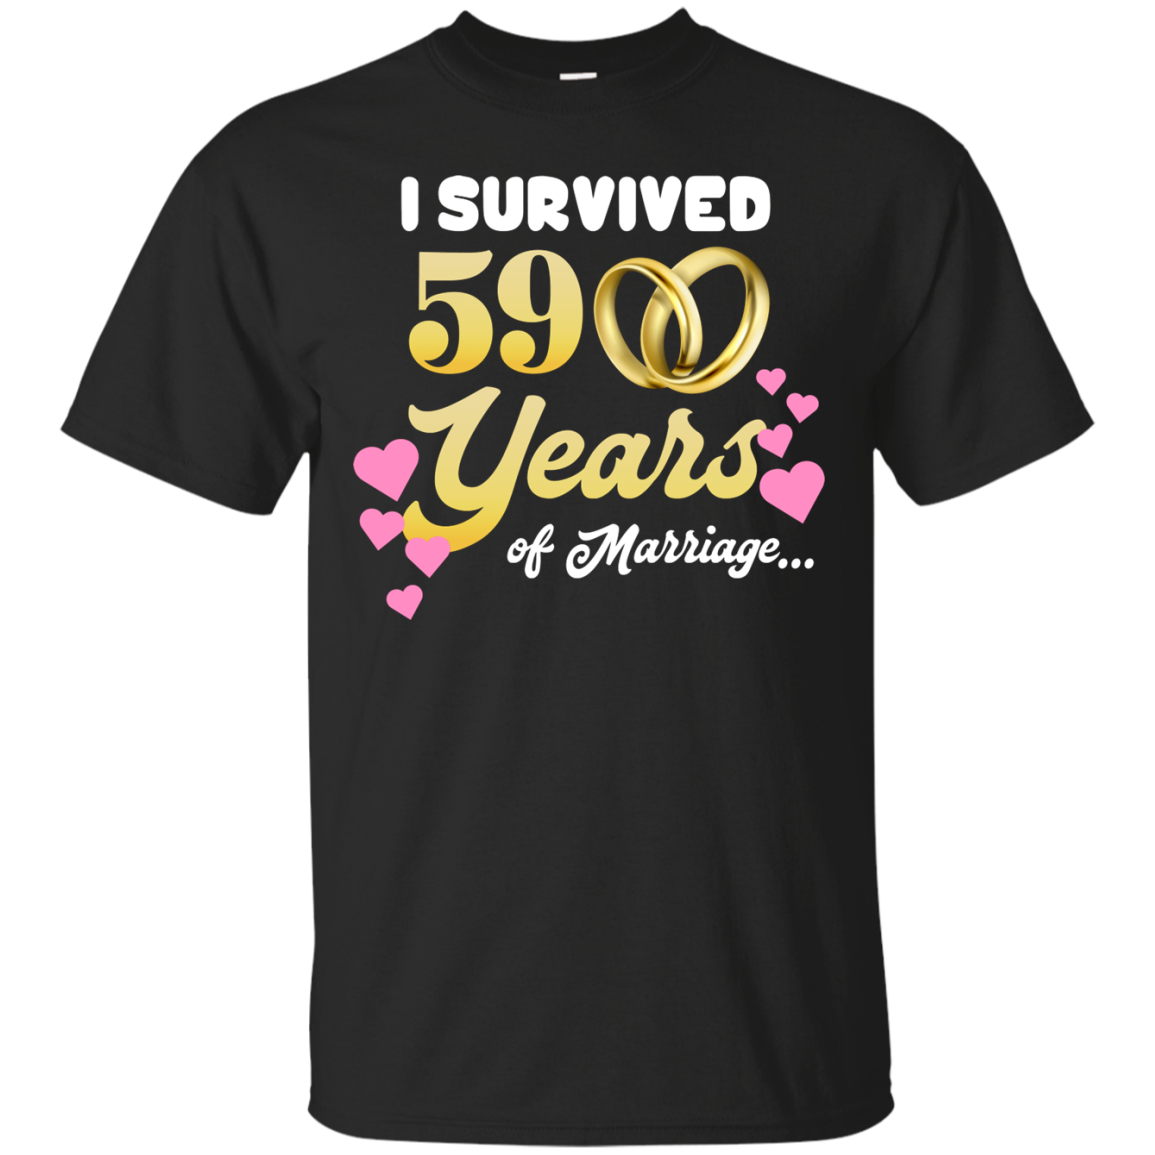 Cover Your Body With Amazing Cute I Survived 59 Years Of Marriage Cool Wedding Anniversary